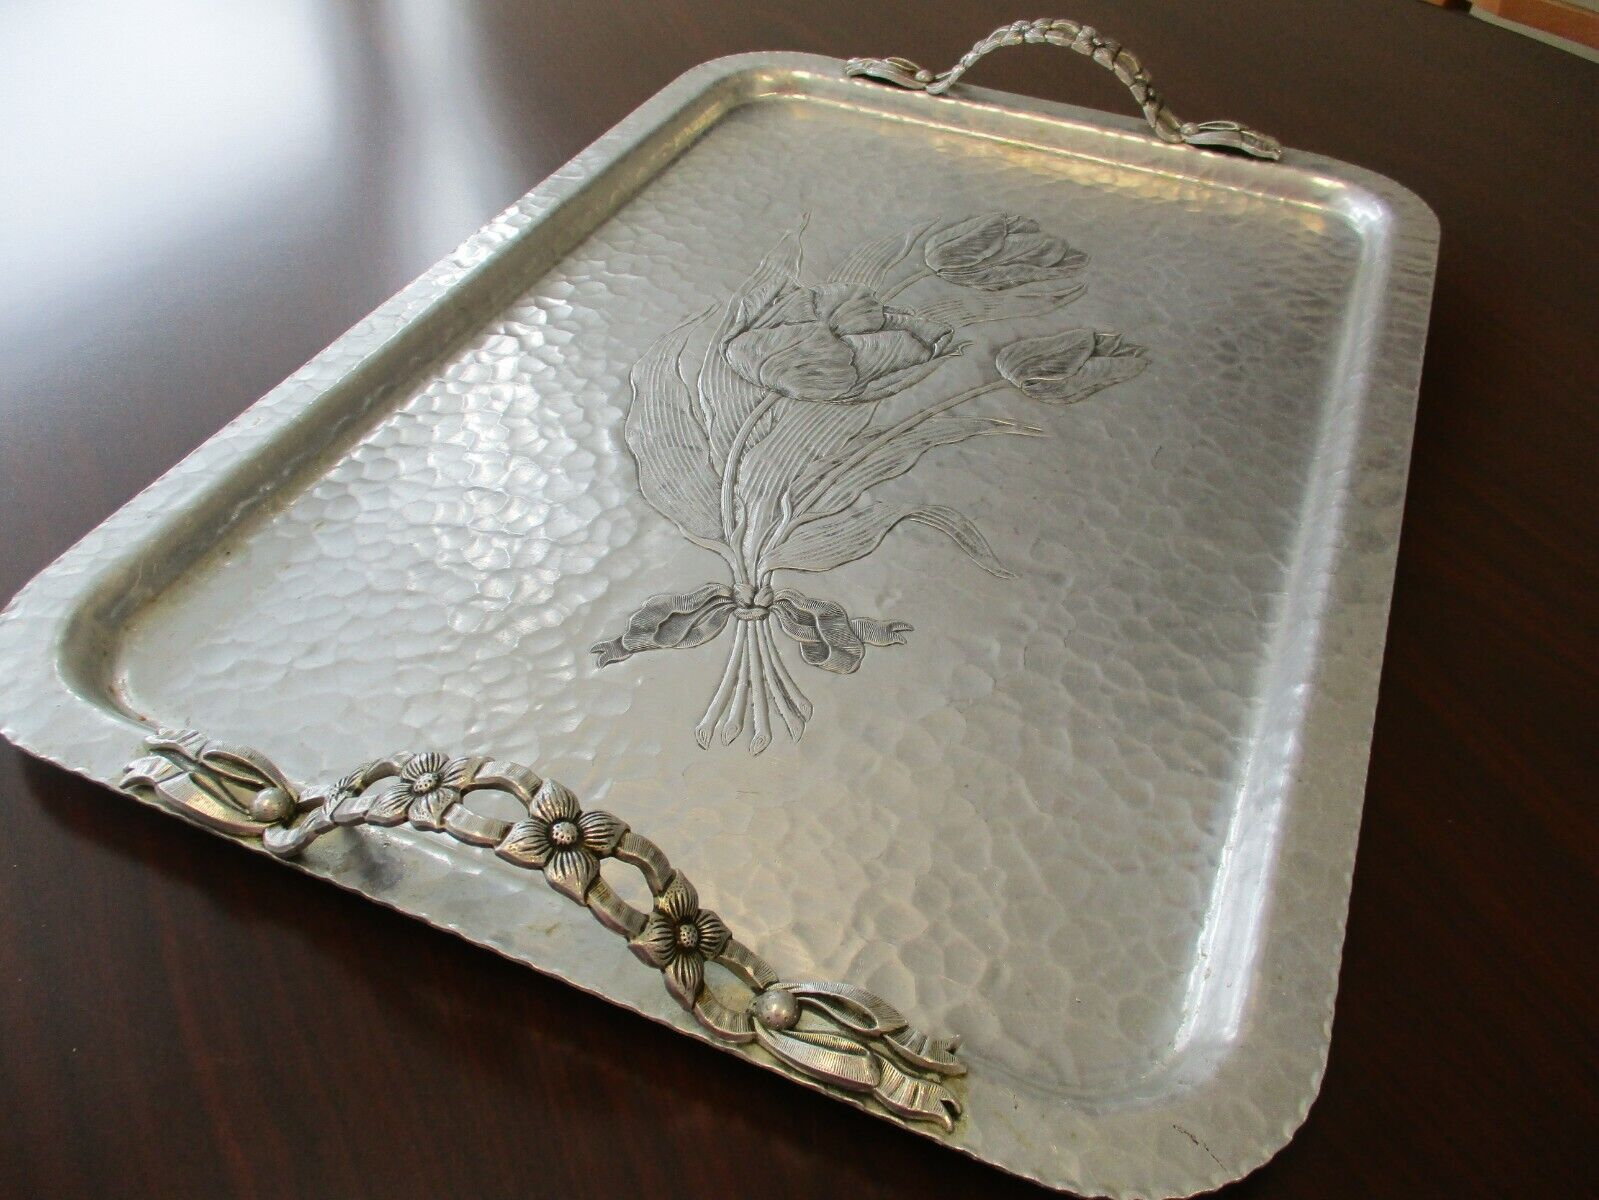 Vintage Rodney Kent Silver Co Hand Wrought Hammered Aluminum Tray #423